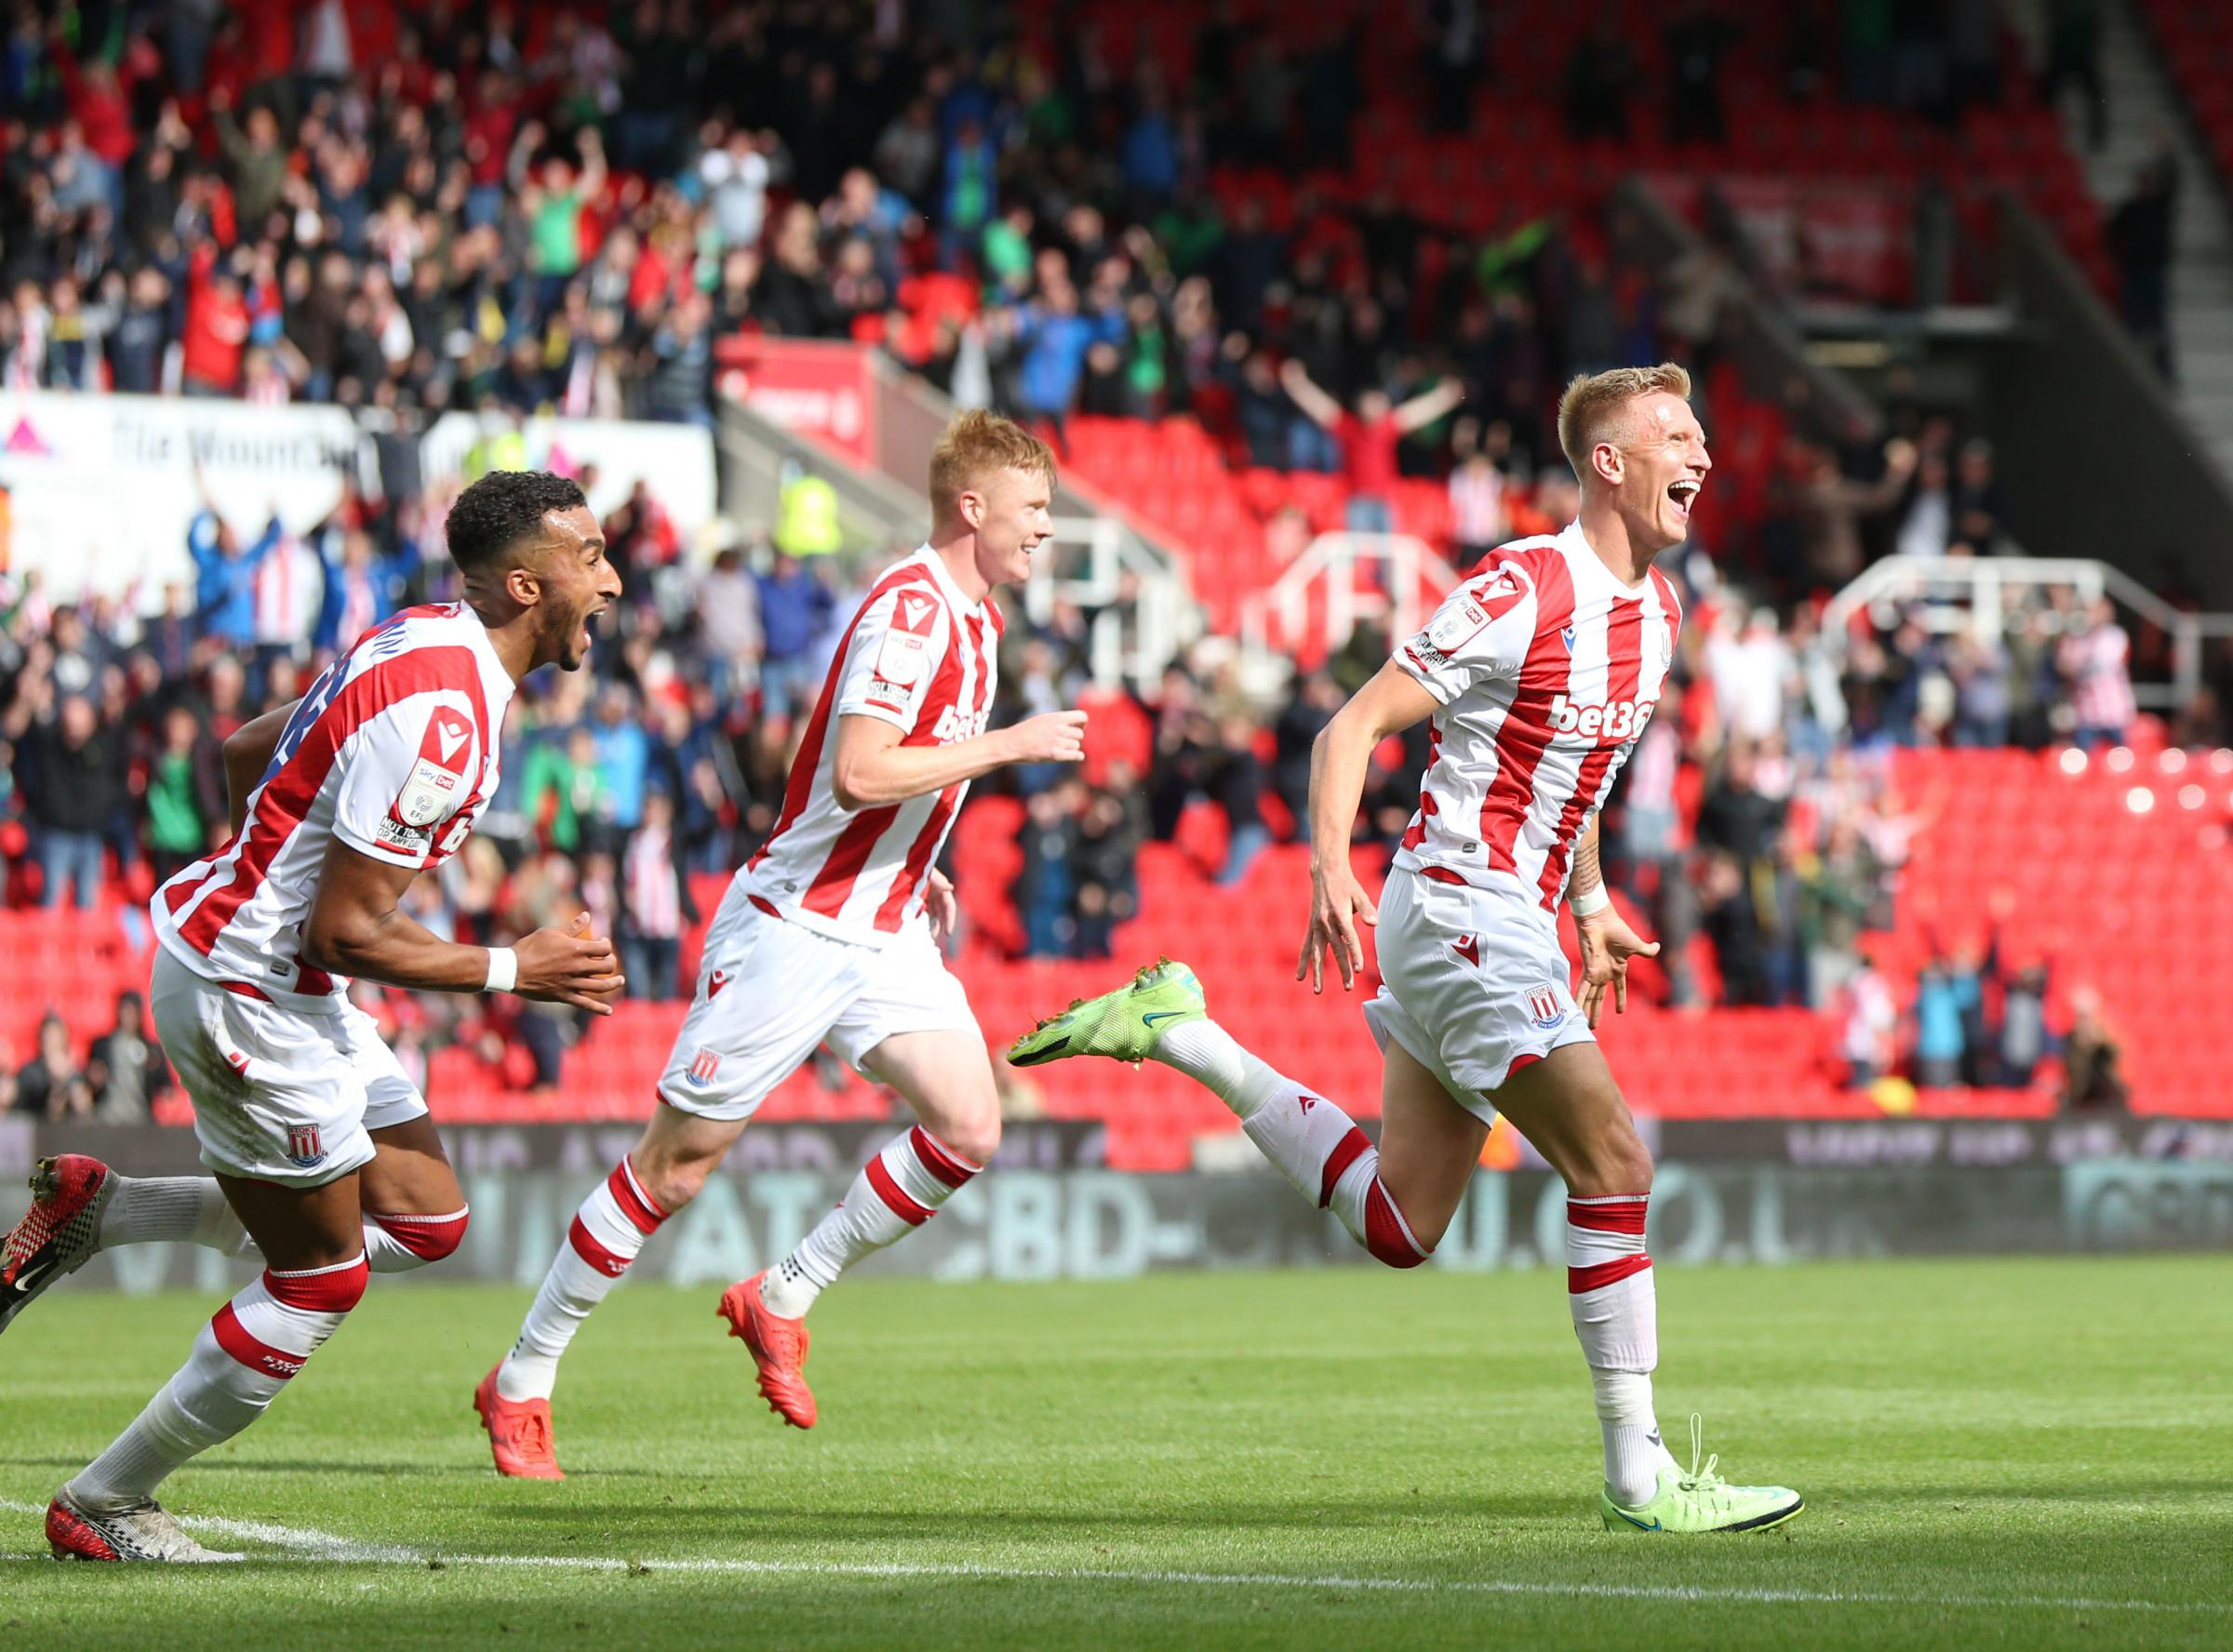 Surridge strikes winner for Stoke - days after being sold by Cherries